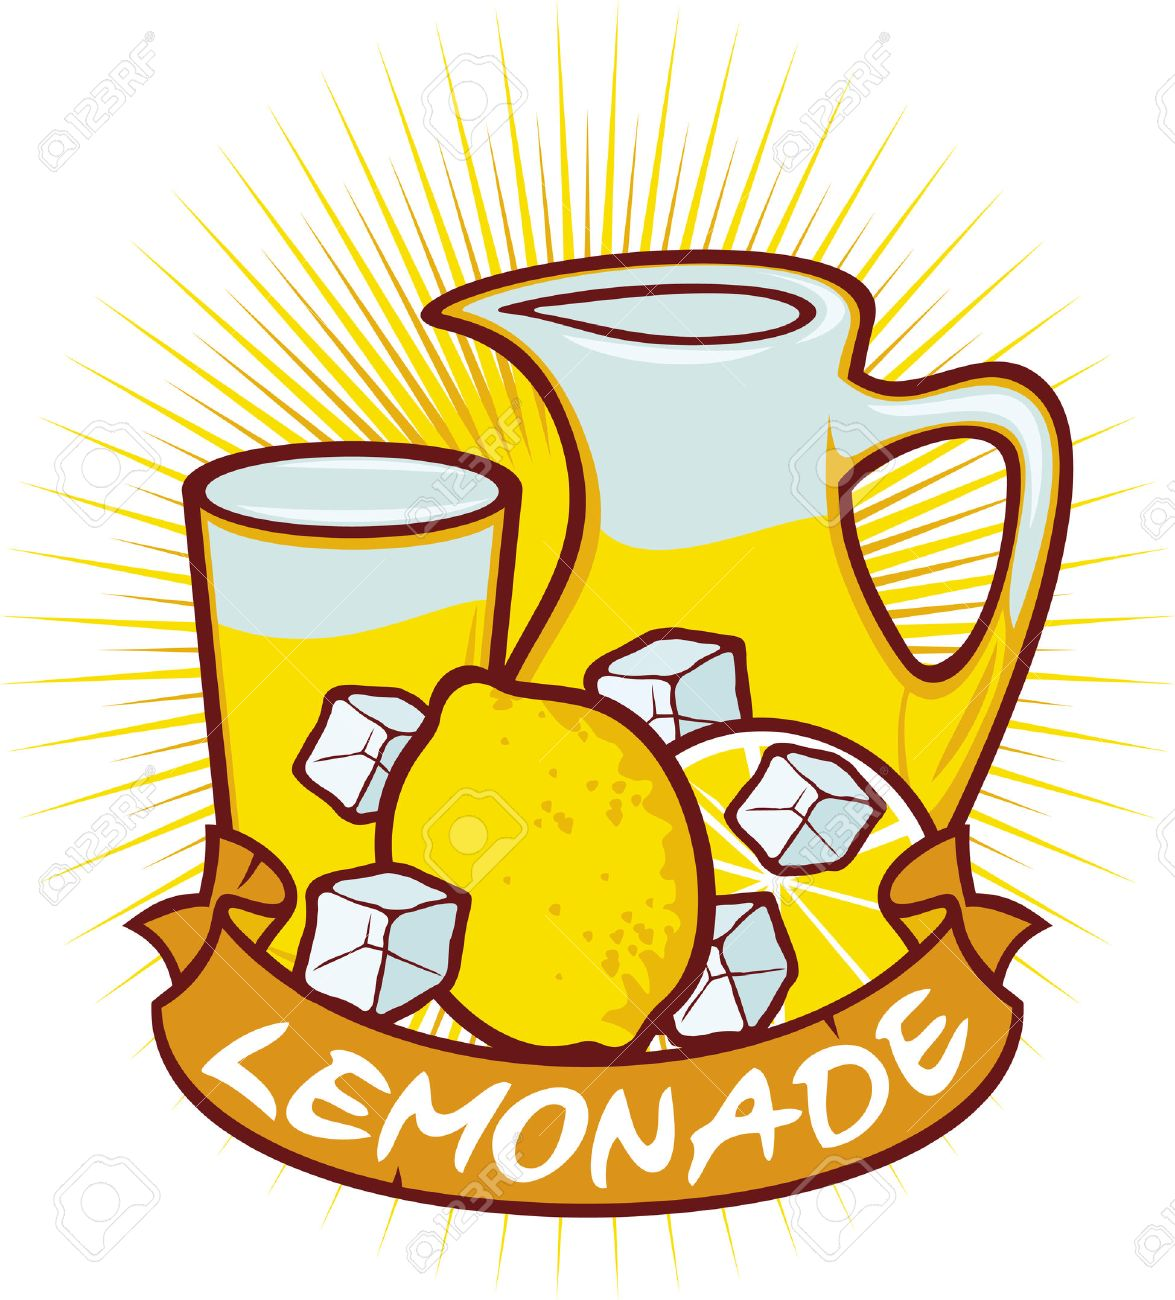 Image result for Lemonade glass free image